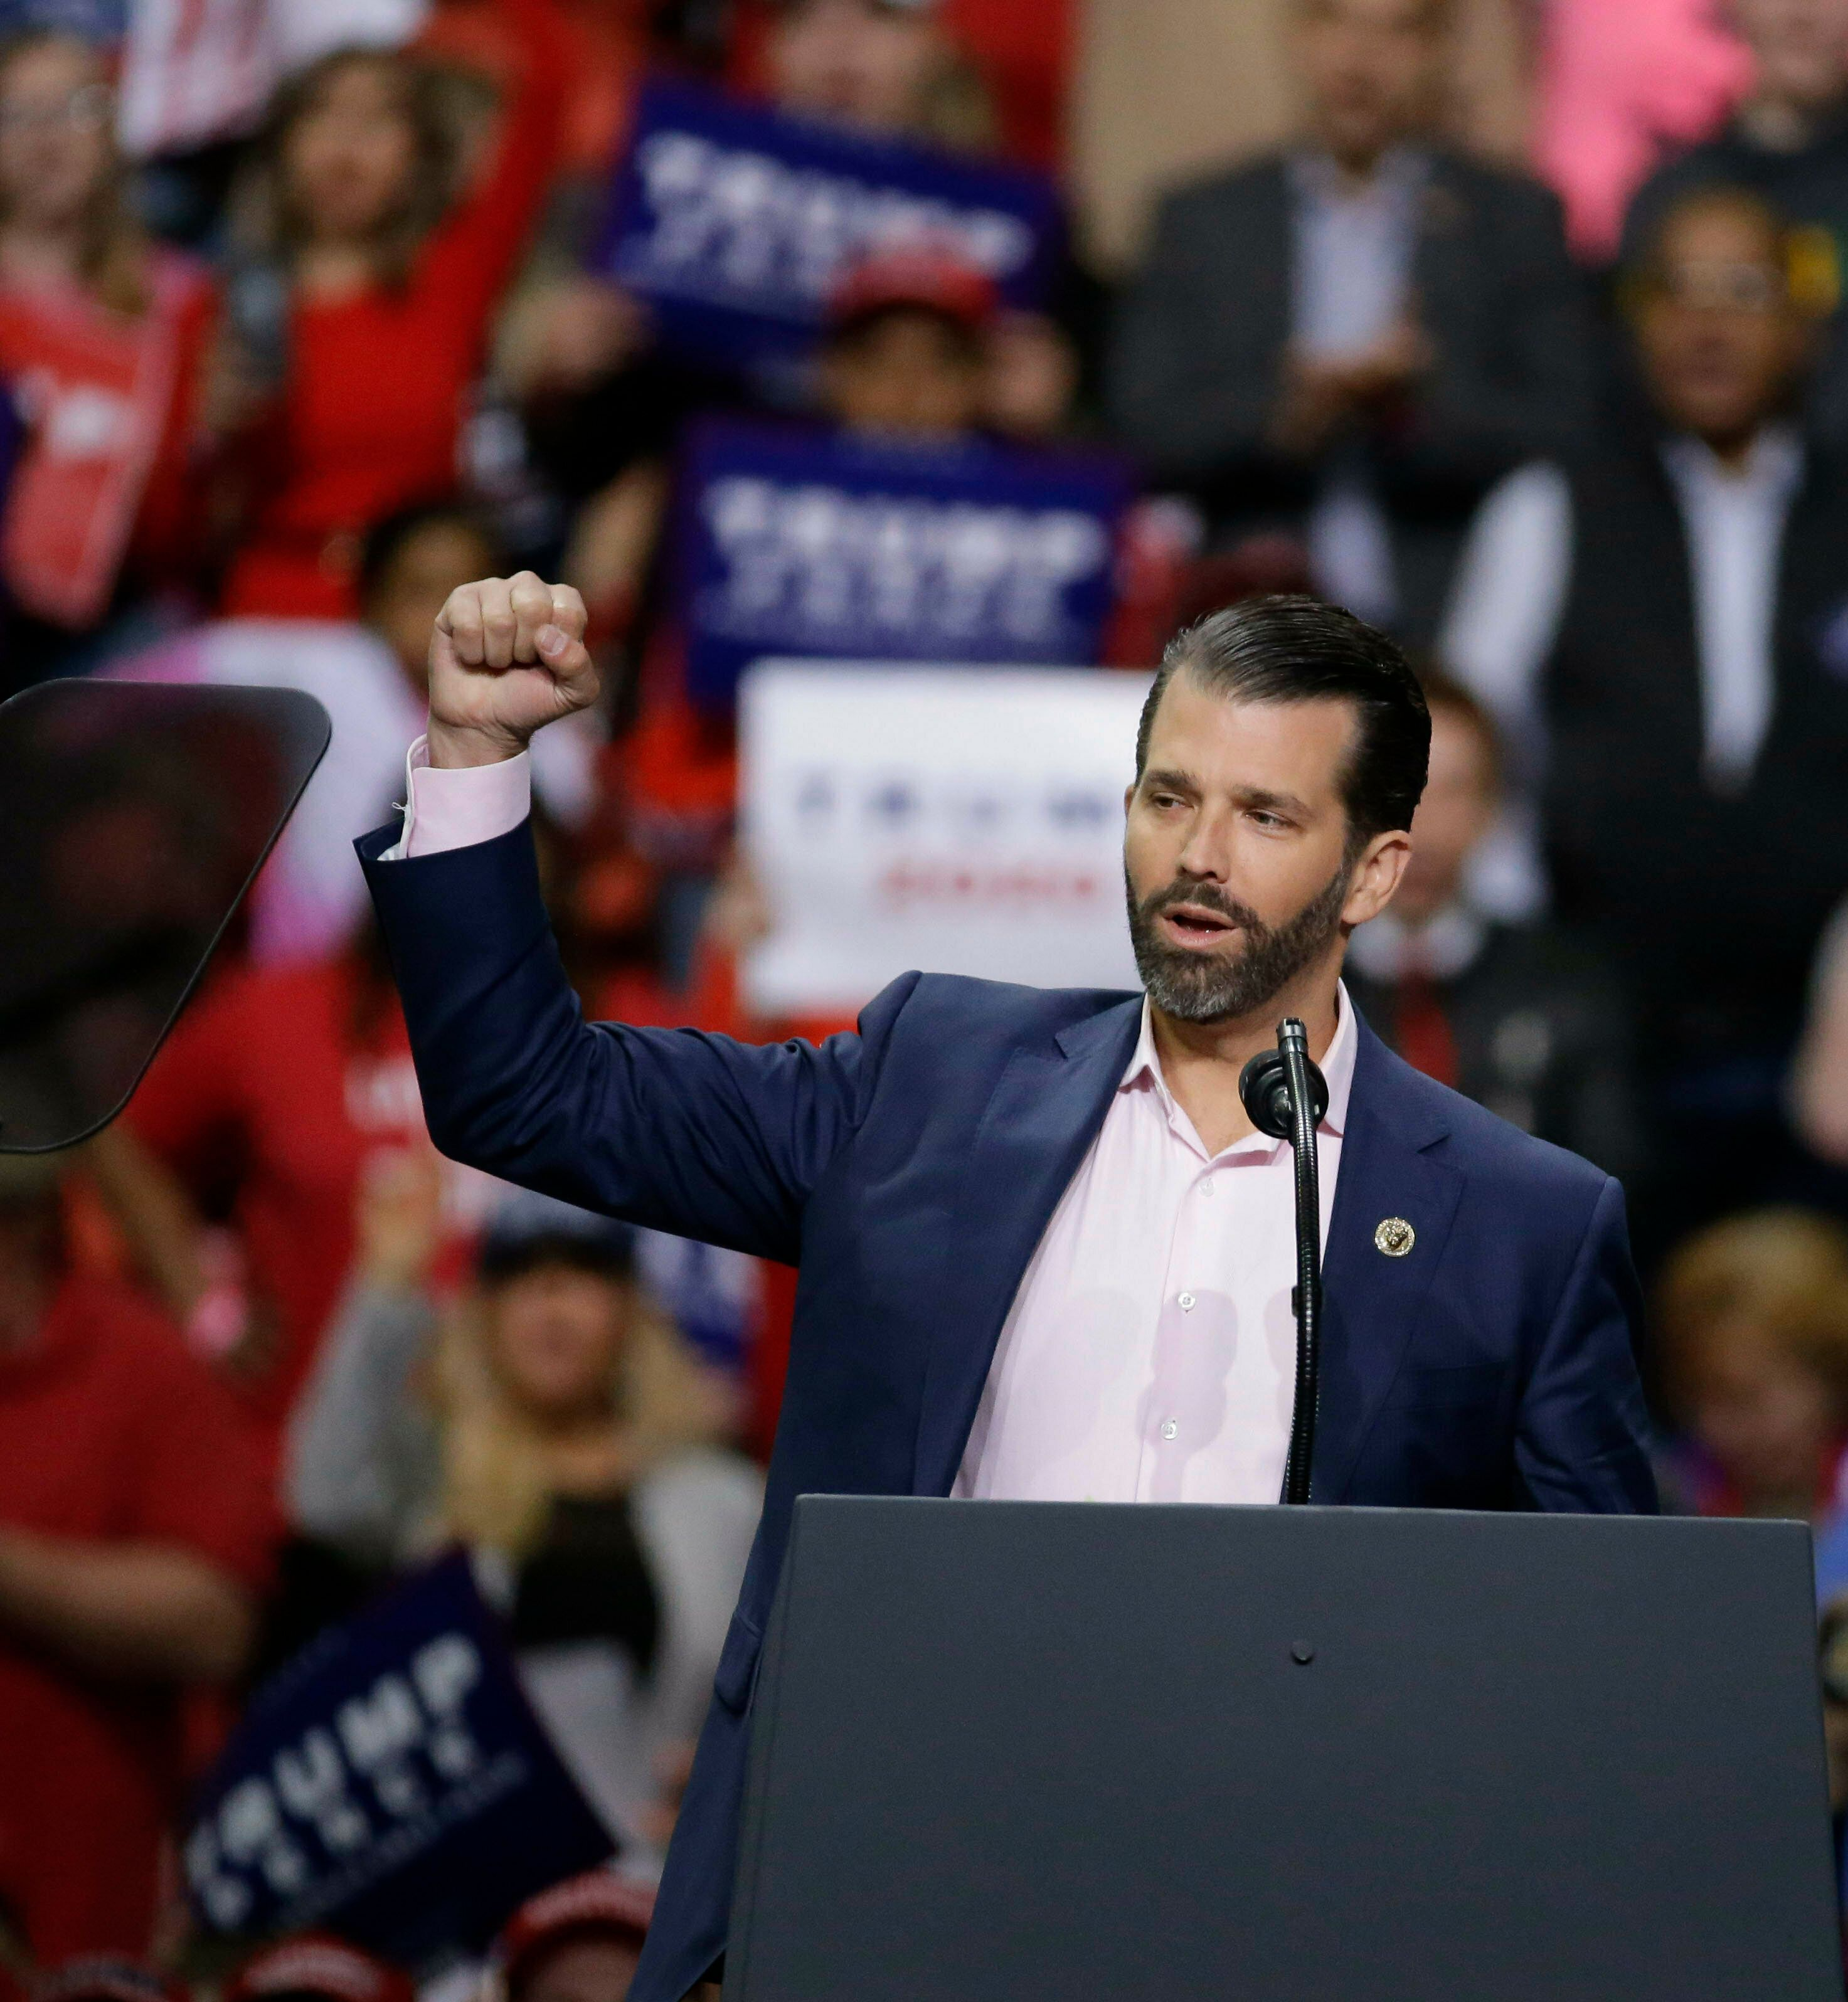 Donald Trump Jr. Agrees To Comply With Senate Subpoena